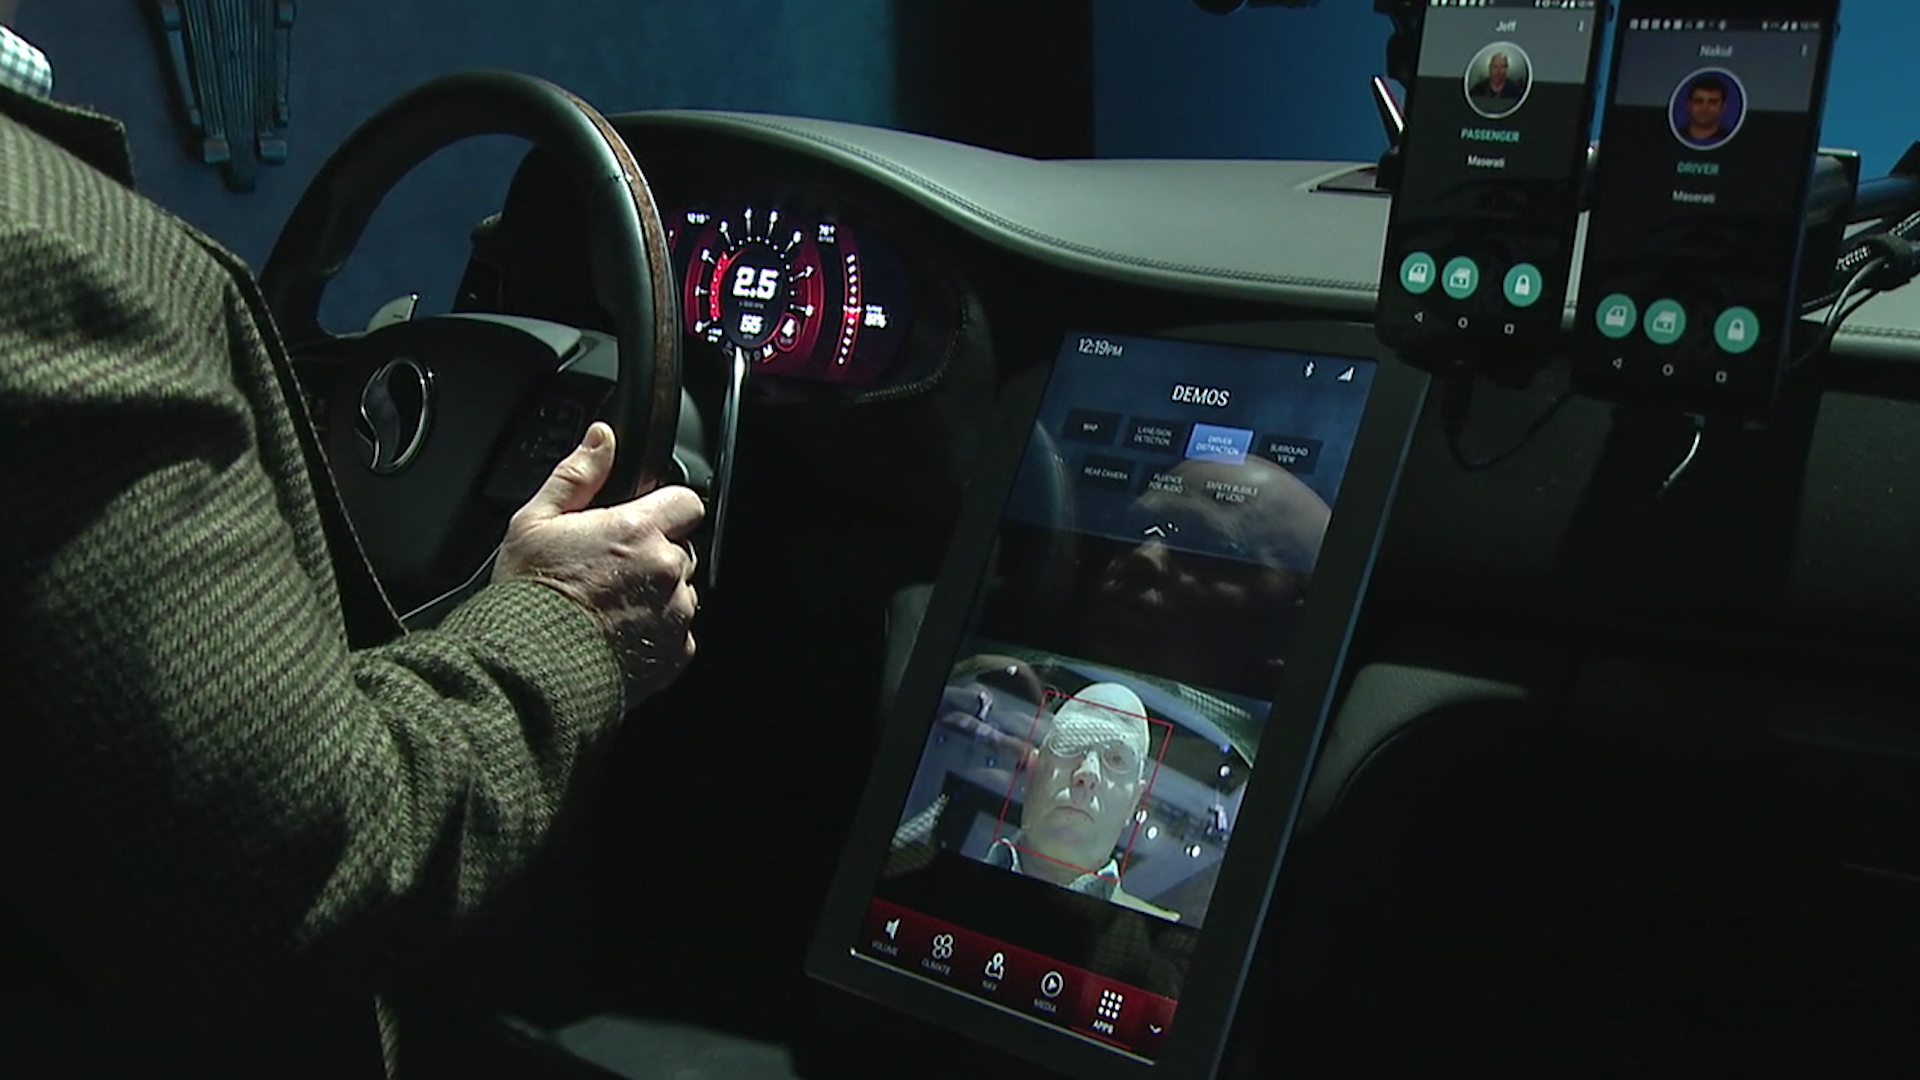 Video: Qualcomm partners with Audi and shows off powerful new automotive chipset